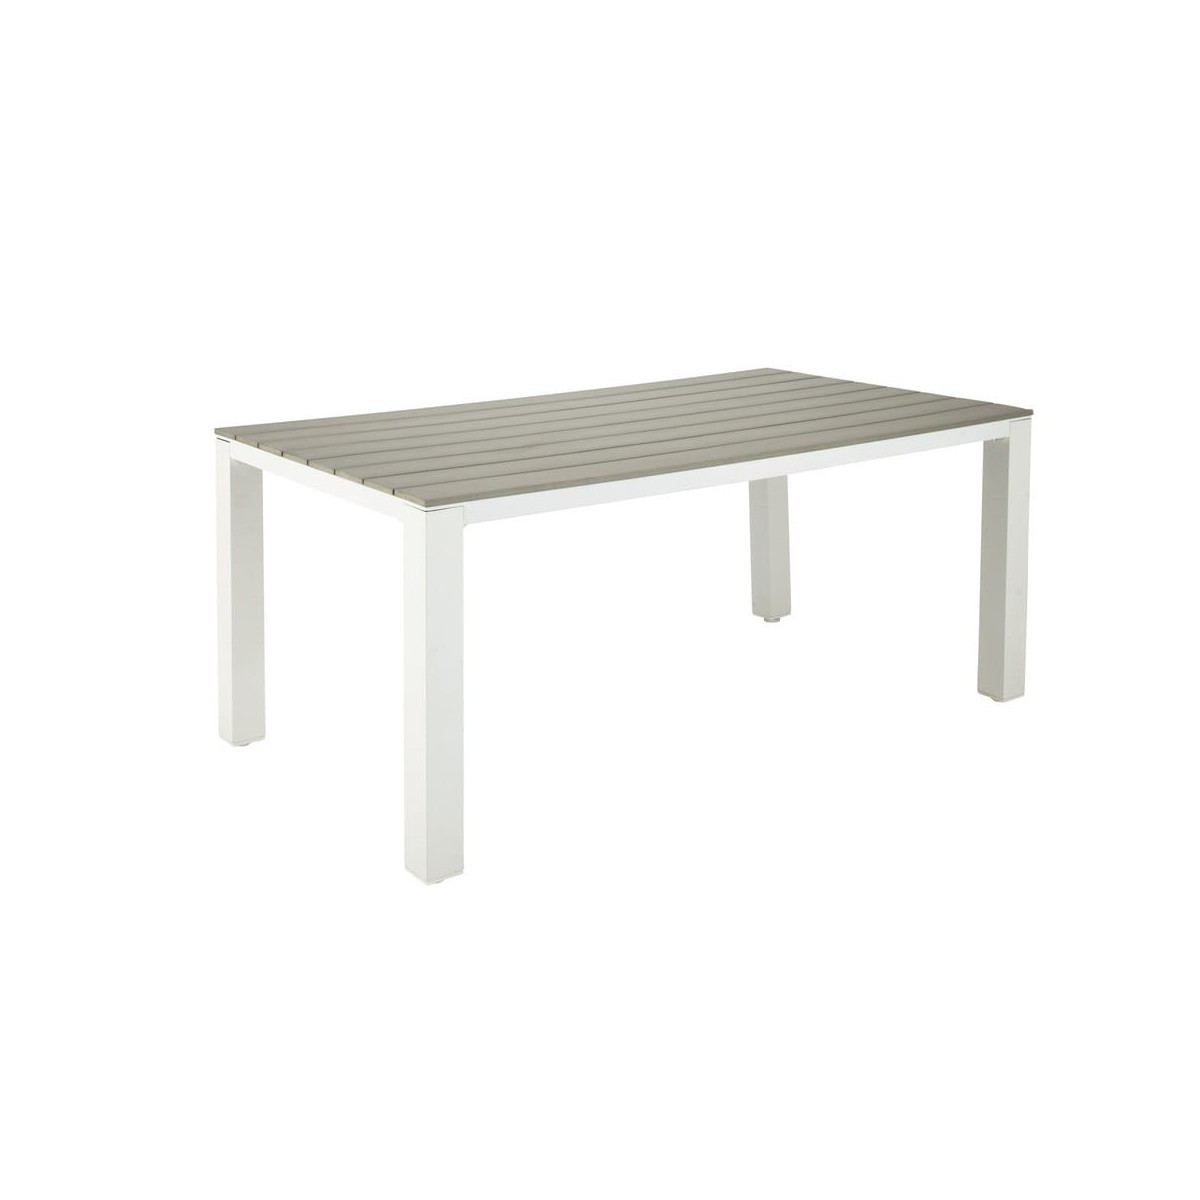 Salon De Jardin Composite Et Alu Table De Jardin Composite Table De Jardin Extensible Alu